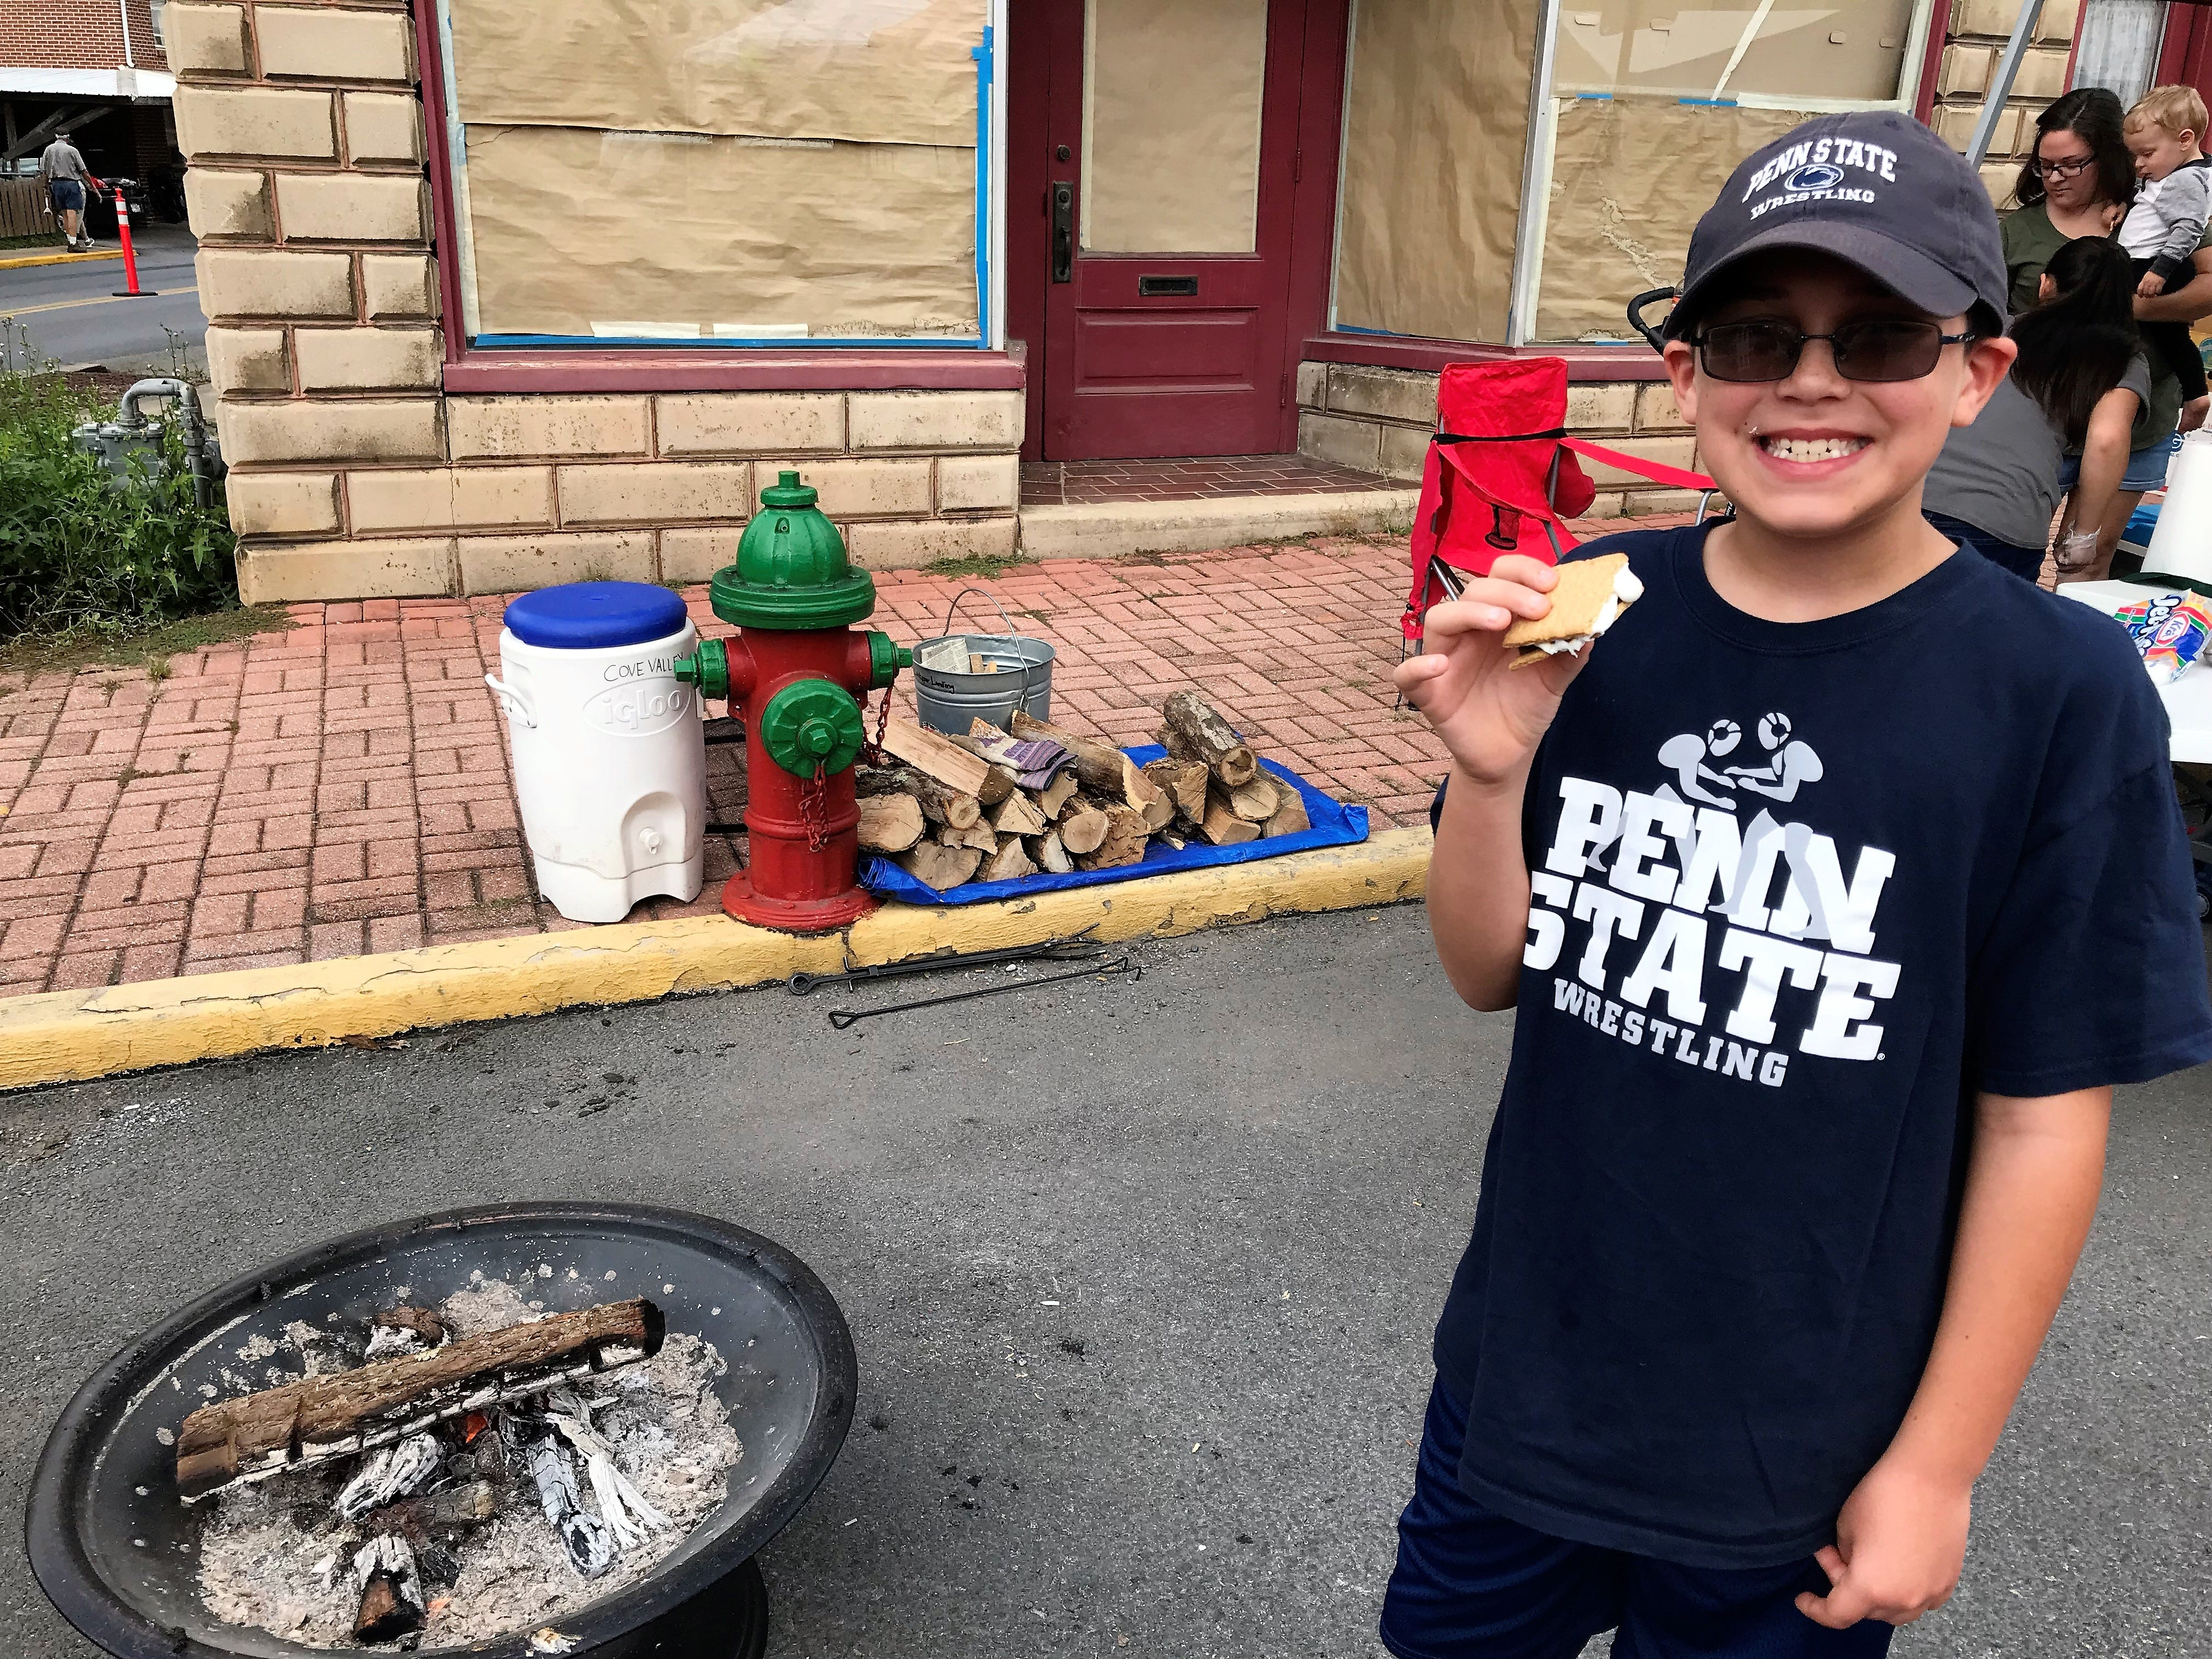 Landon Shaker, Chambersburg, made a S'more at the Cove Valley Christian Youth Camp stand on Saturday, Sept. 29, 2018, at Mercersburg Townfest.